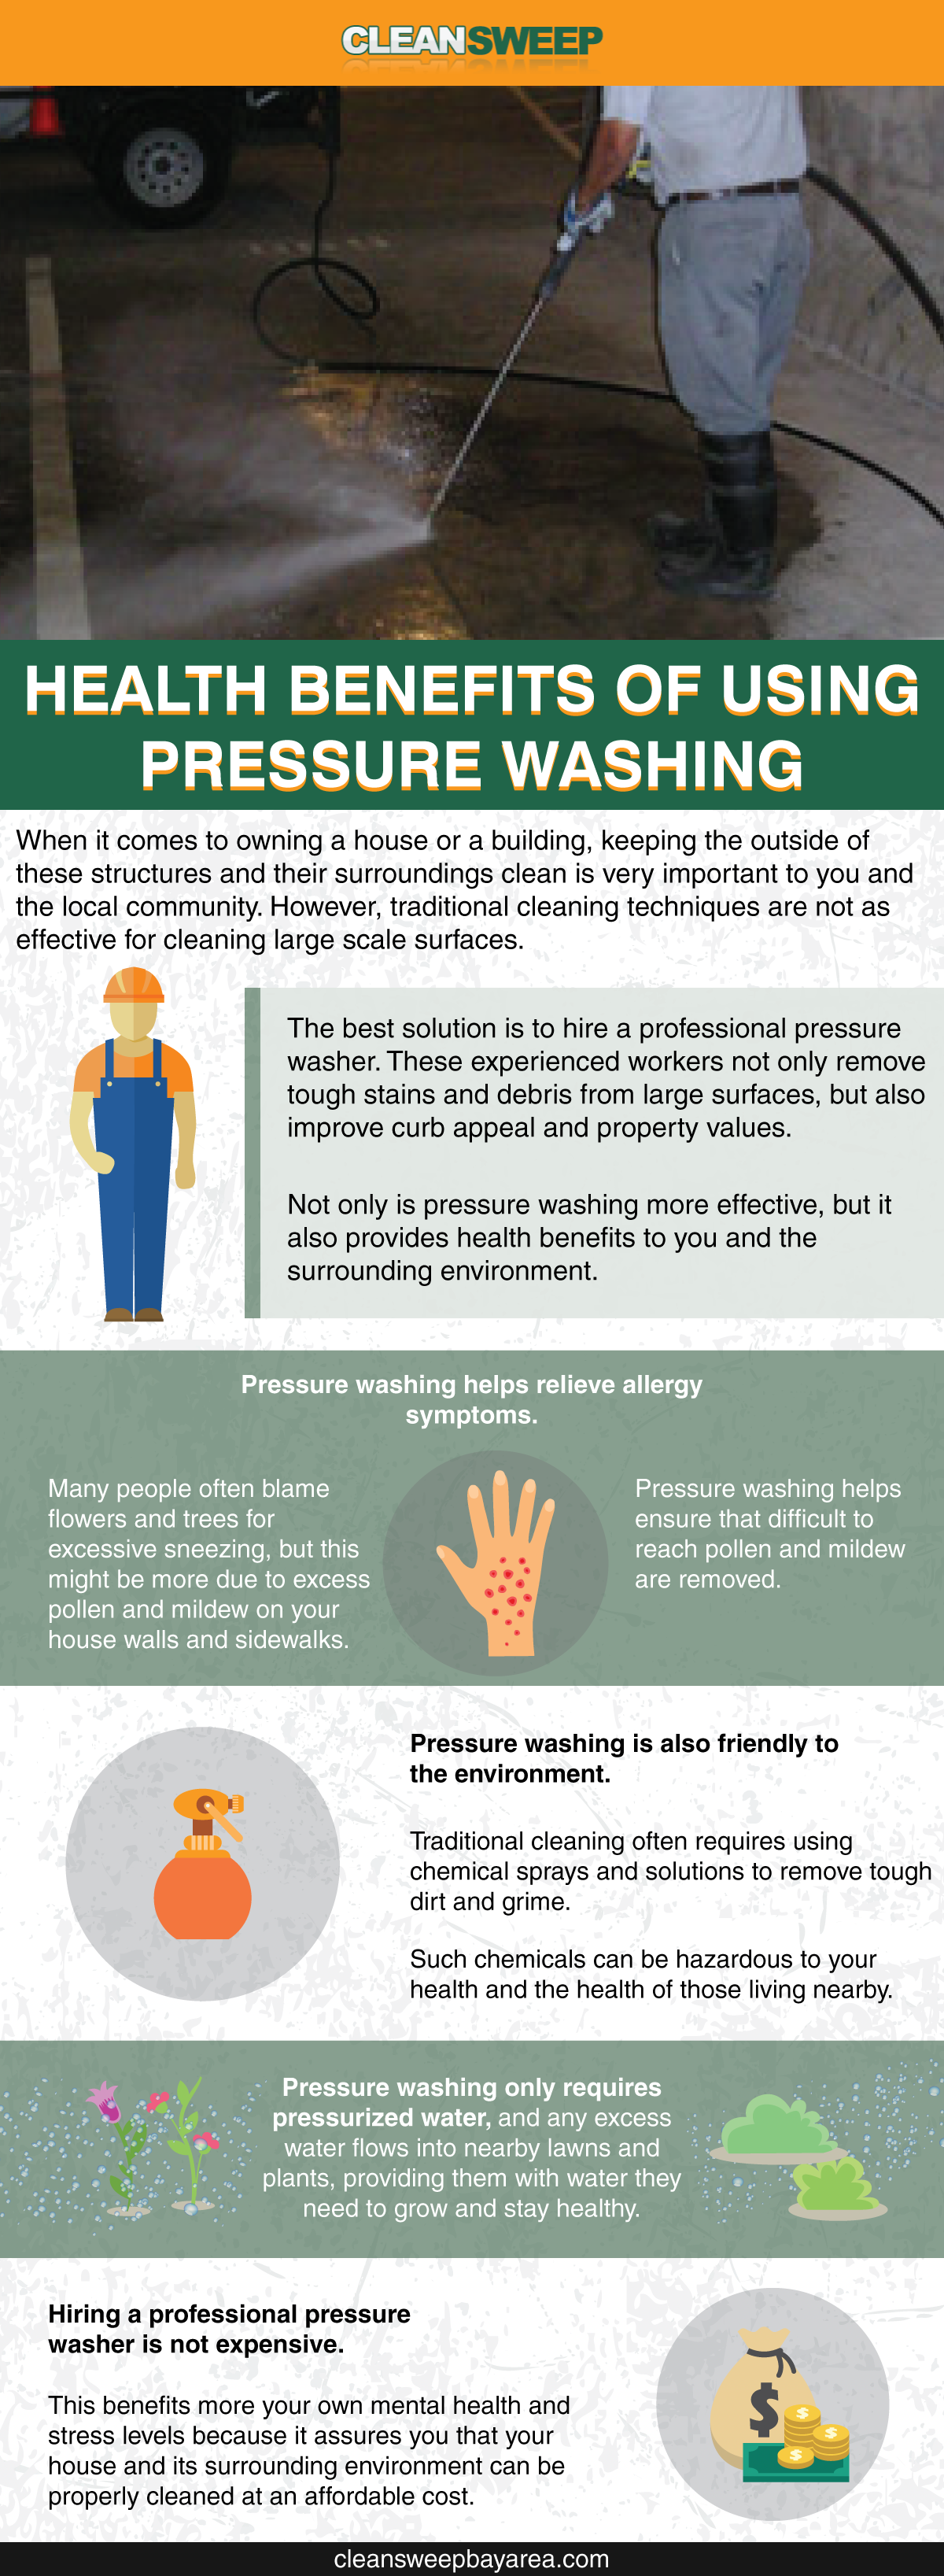 Health Benefits of Using Pressure Washing